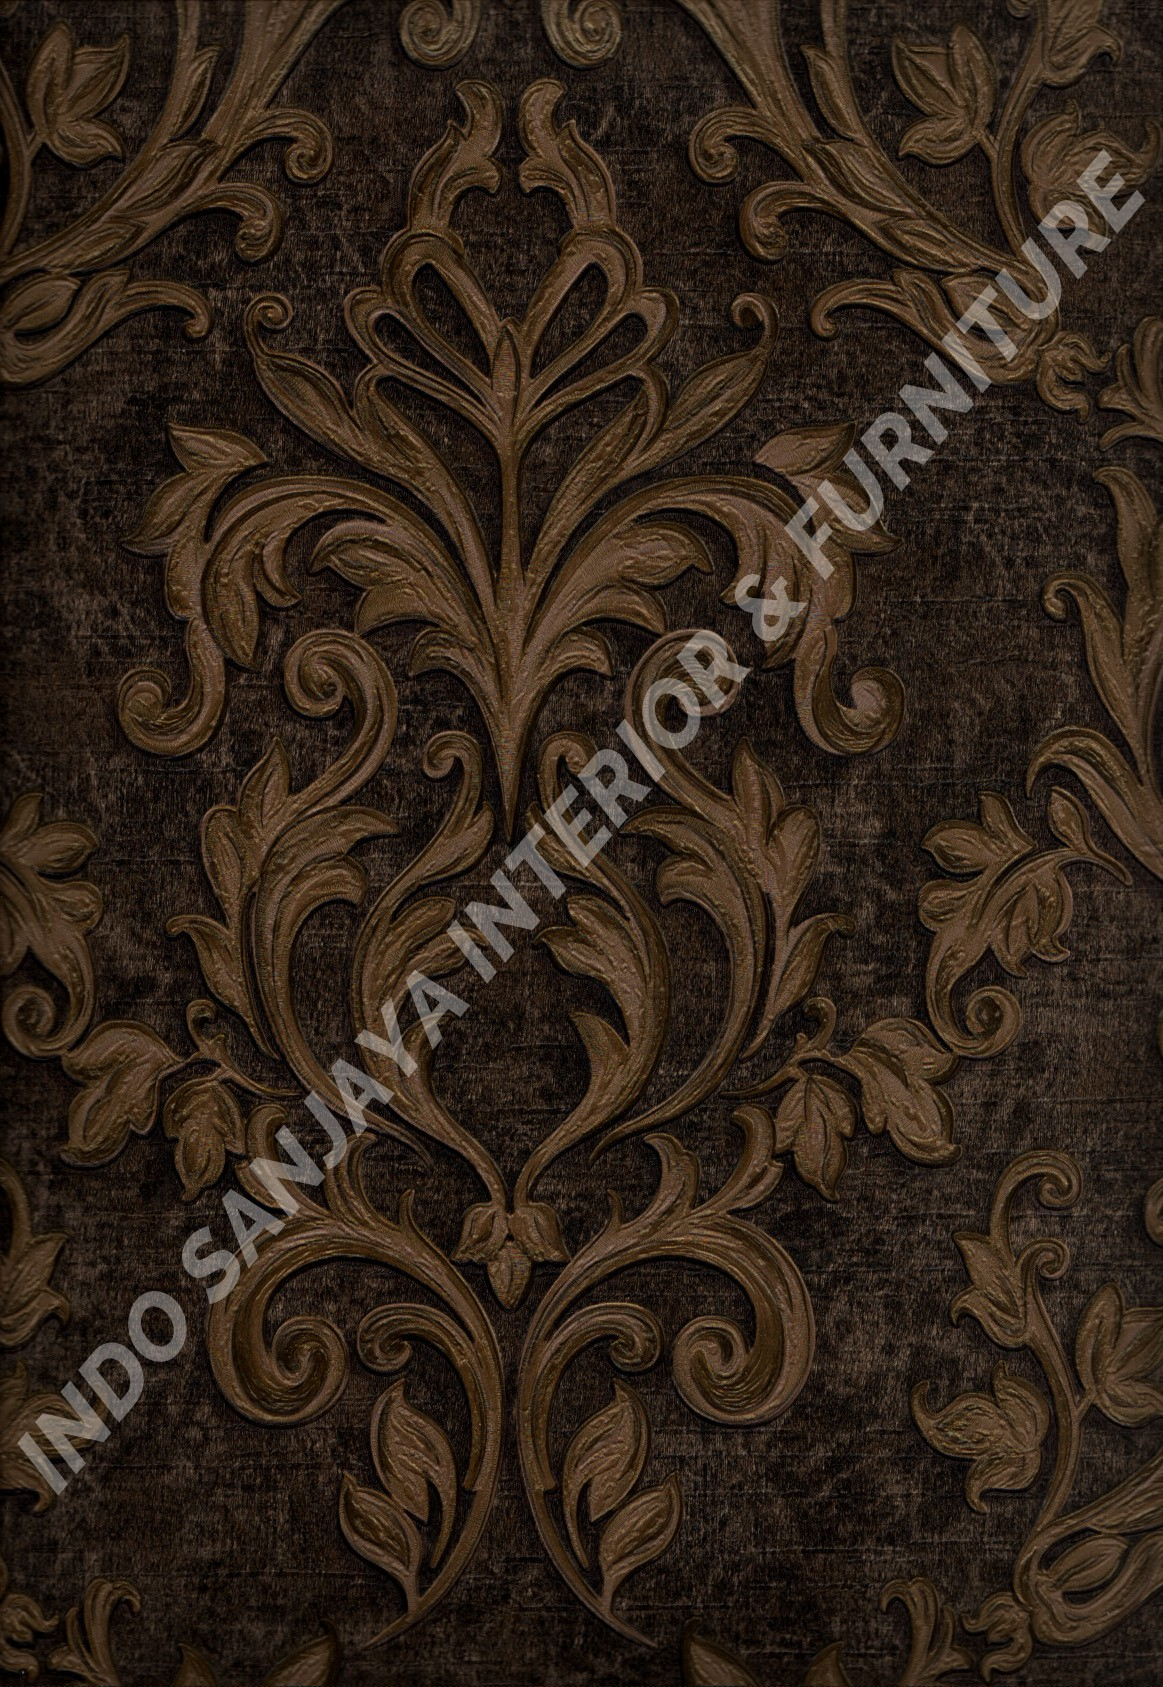 wallpaper   Wallpaper Bunga 8841:8841 corak  warna